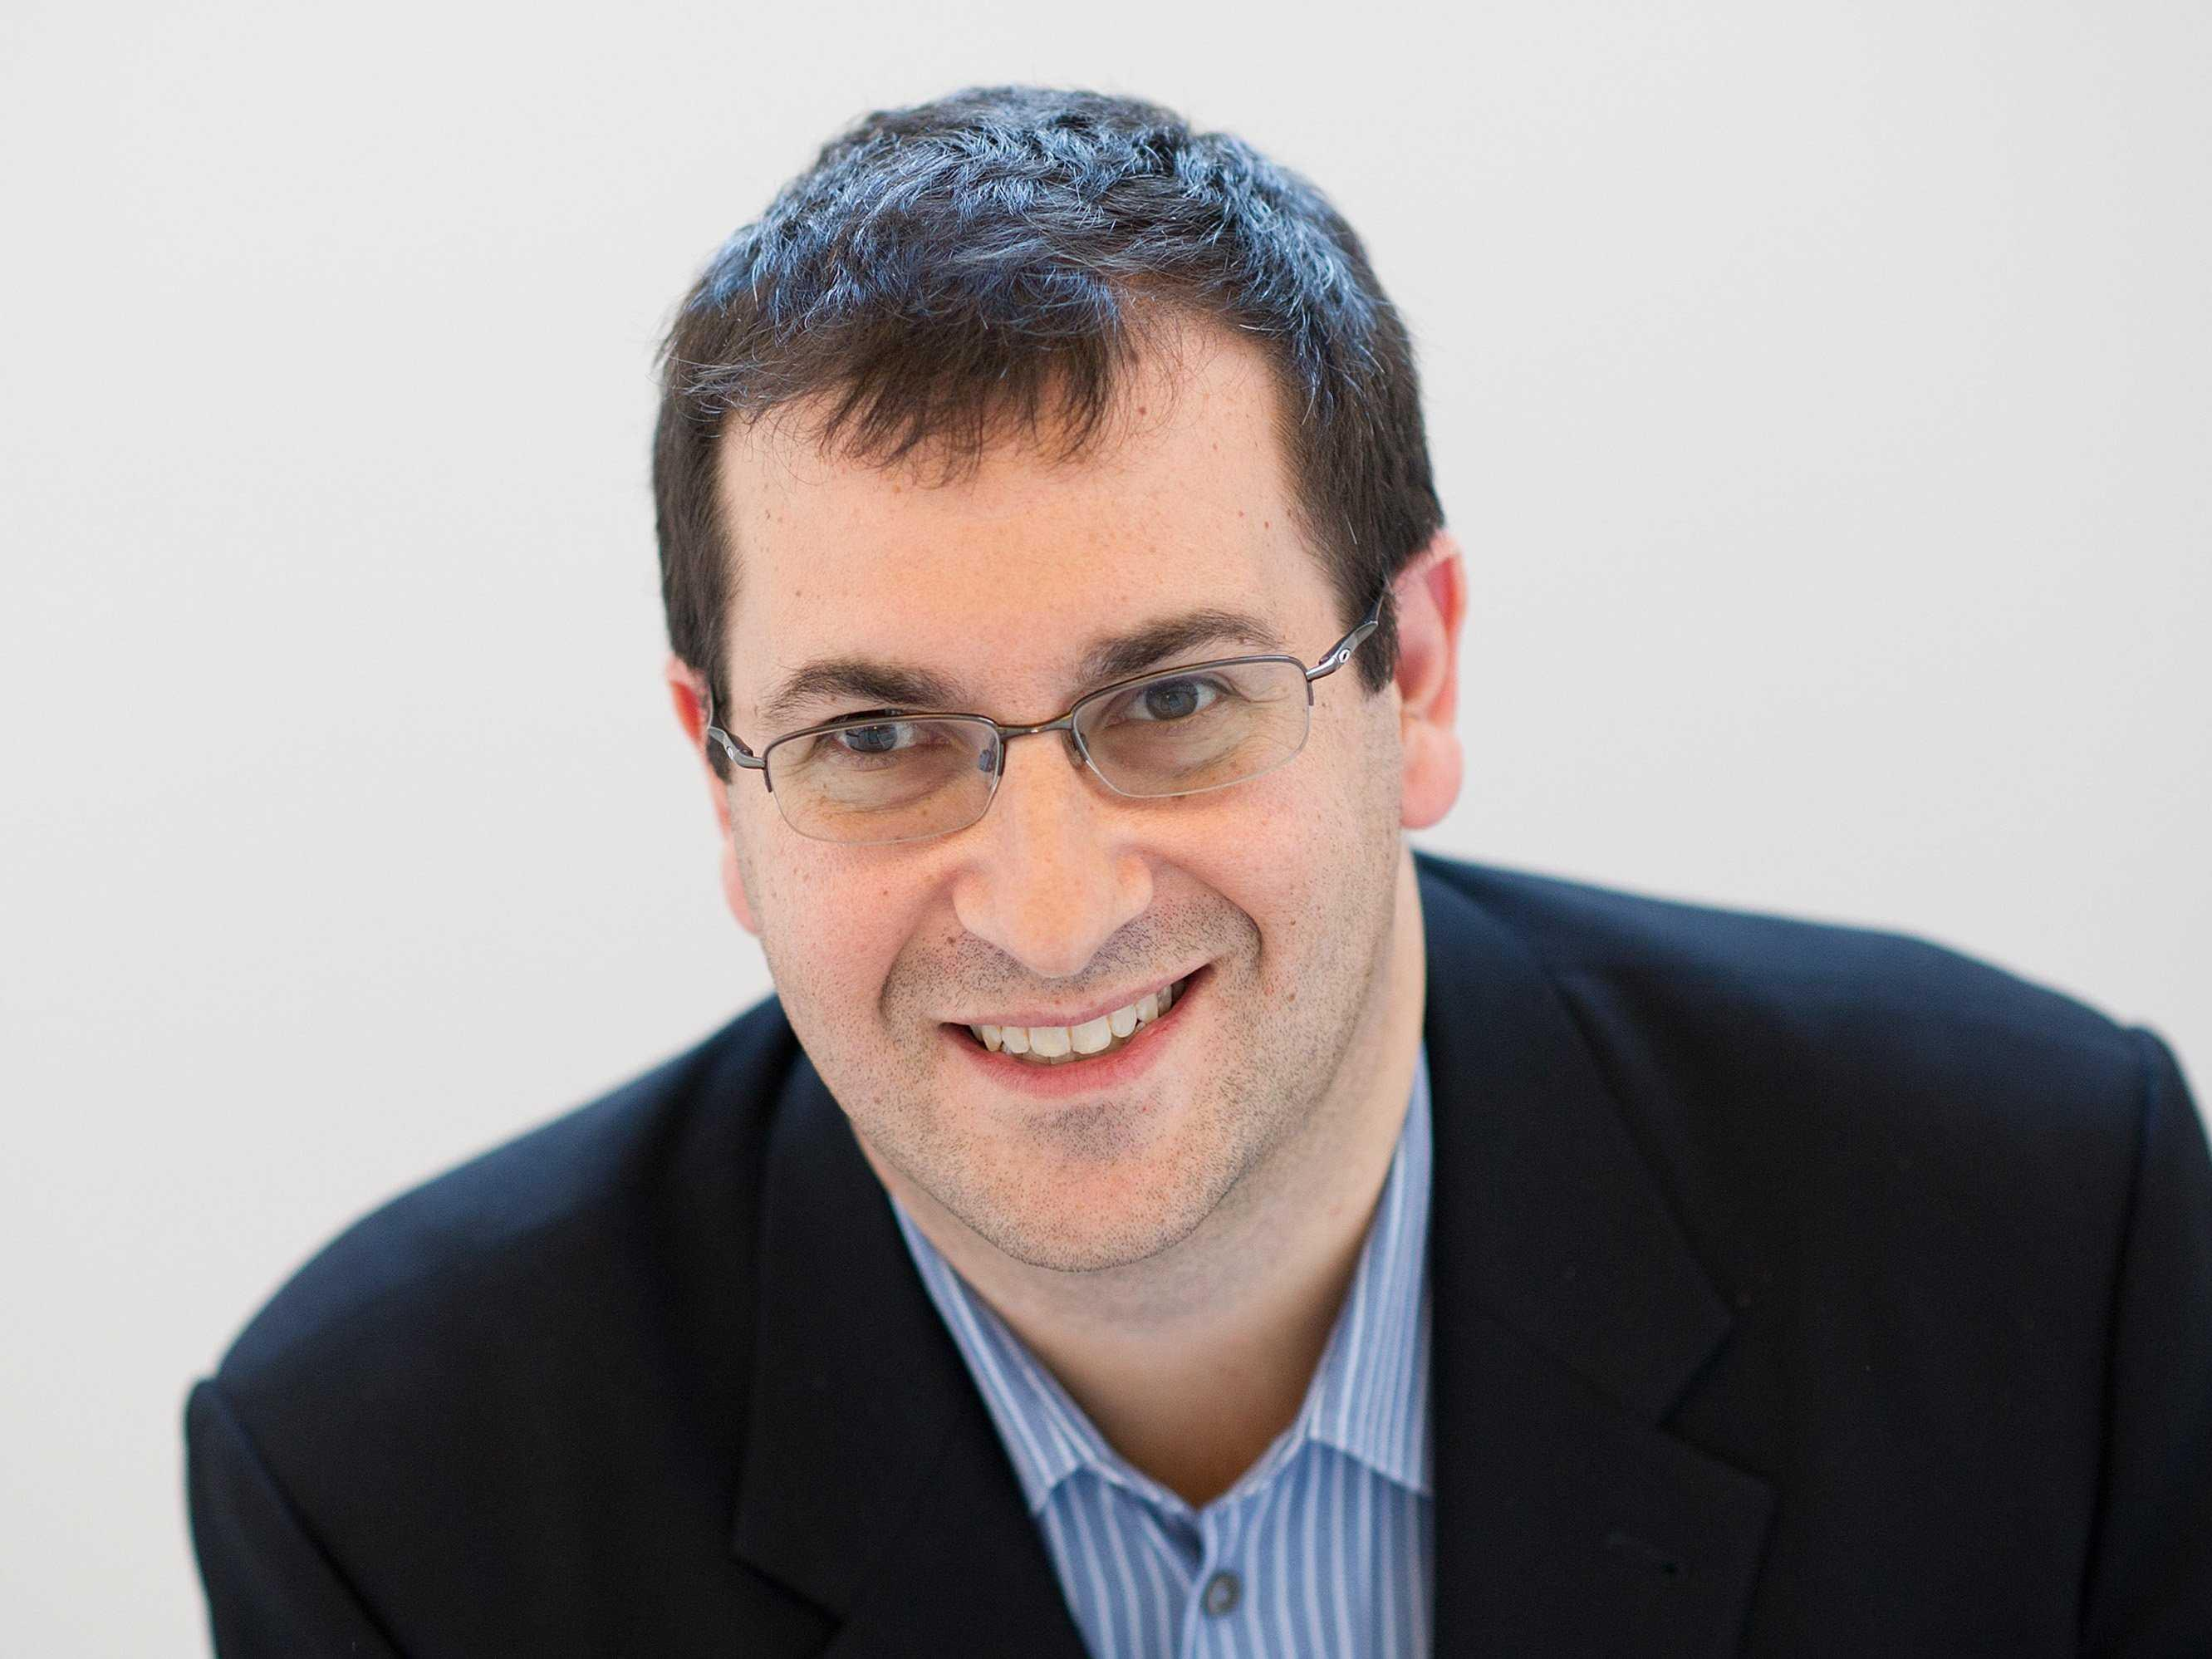 How ditching law school and quitting a bunch of good jobs led Dave Goldberg to tech fame and fortune